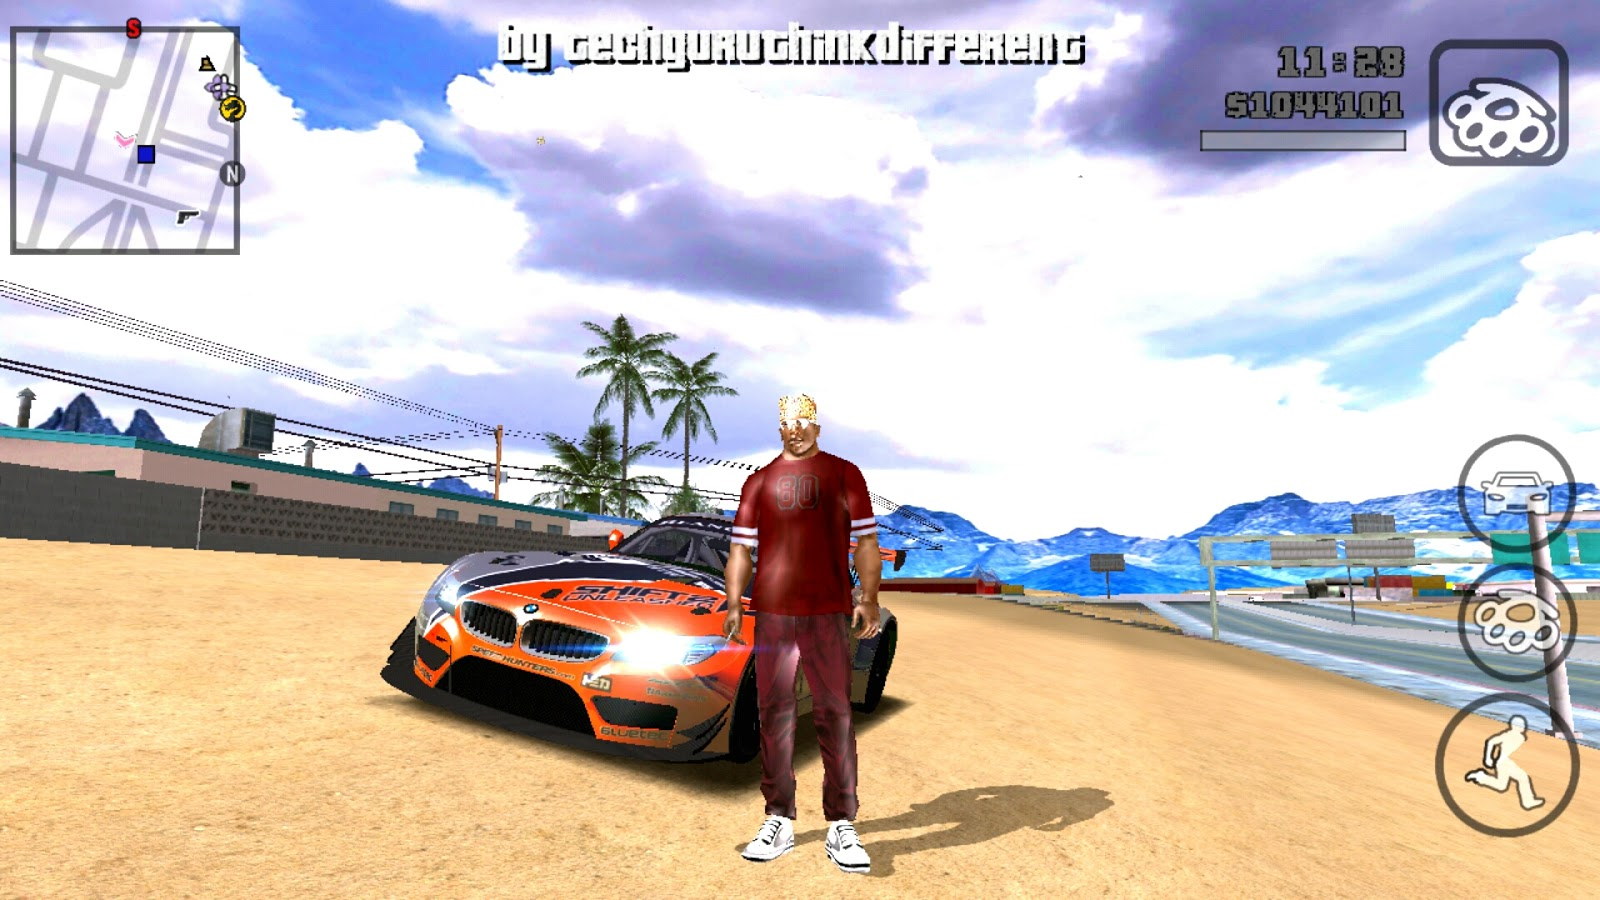 GTA SAN ANDREAS ULTRA GRAPHICS MOD FOR ANDROID ~ Free ...